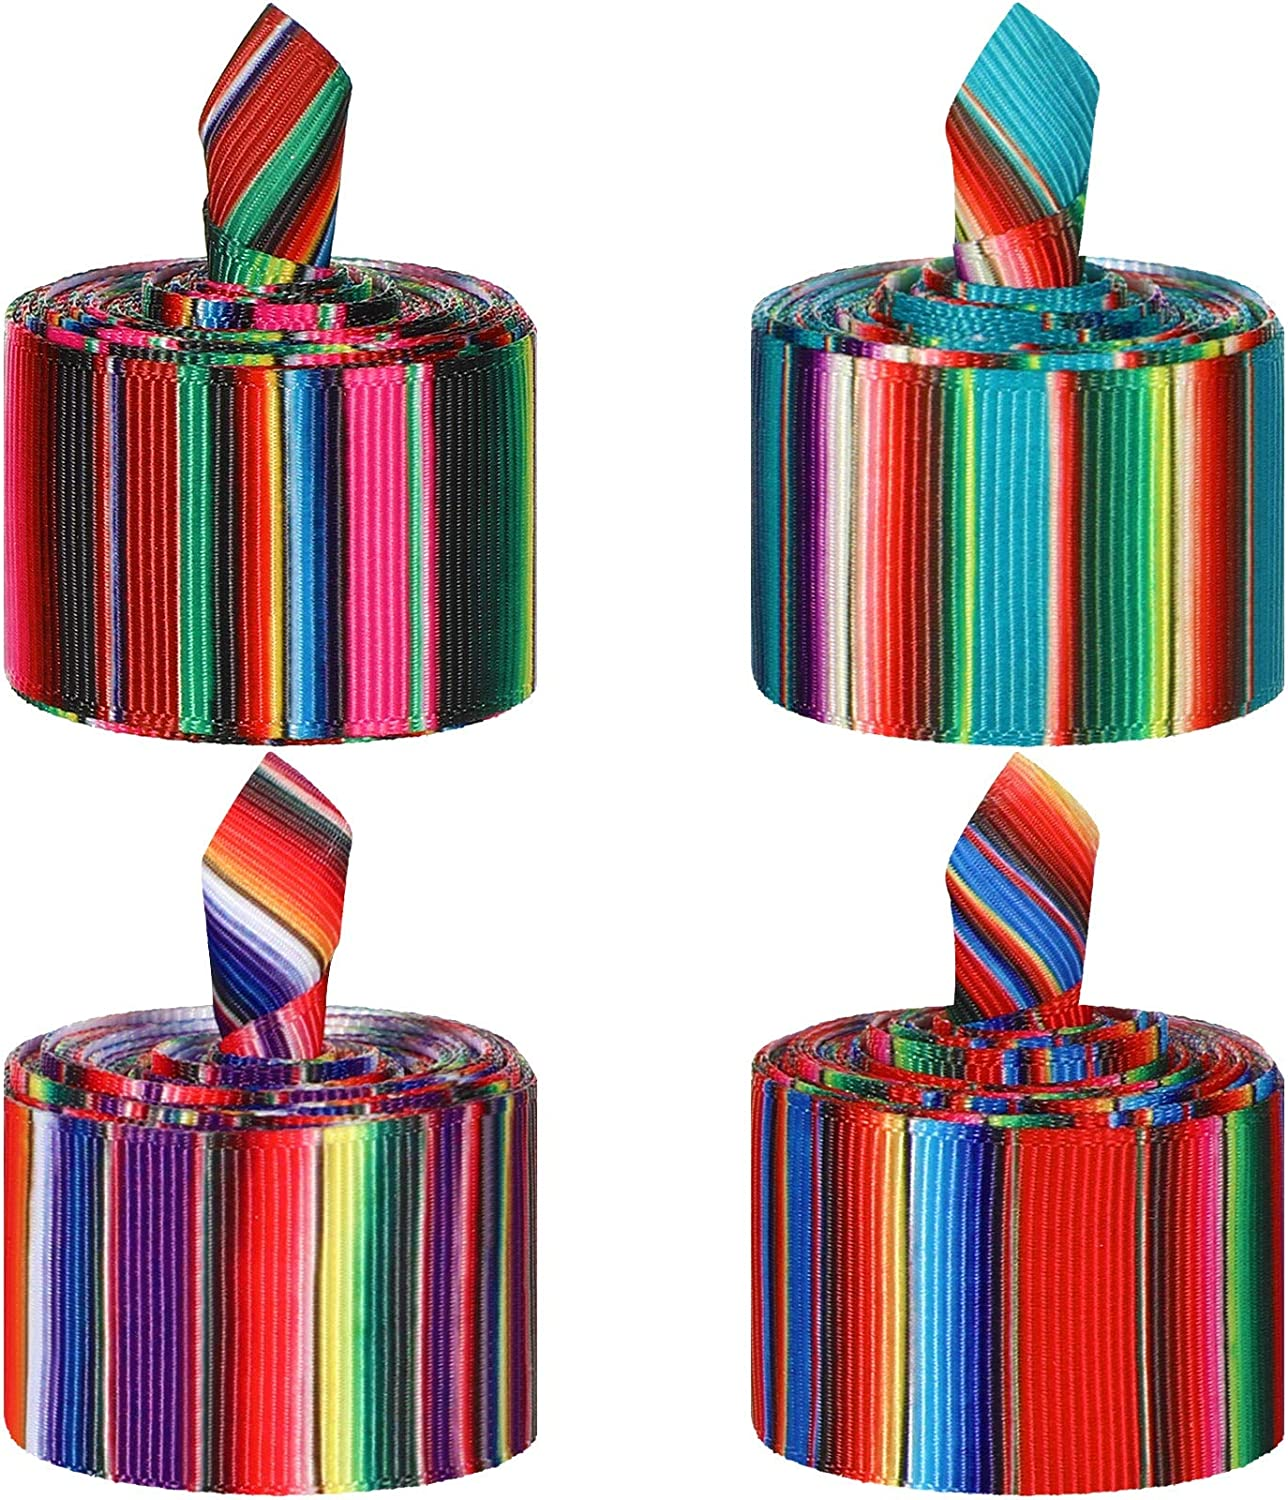 4 Pieces Fiesta Ribbon Mexican Serape Ribbon Rainbow Stripes Ribbon Colorful Grosgrain Ribbon for DIY Wrapping, Fall Crafts Decoration, Party Decoration, Crafting Sewing Supplies